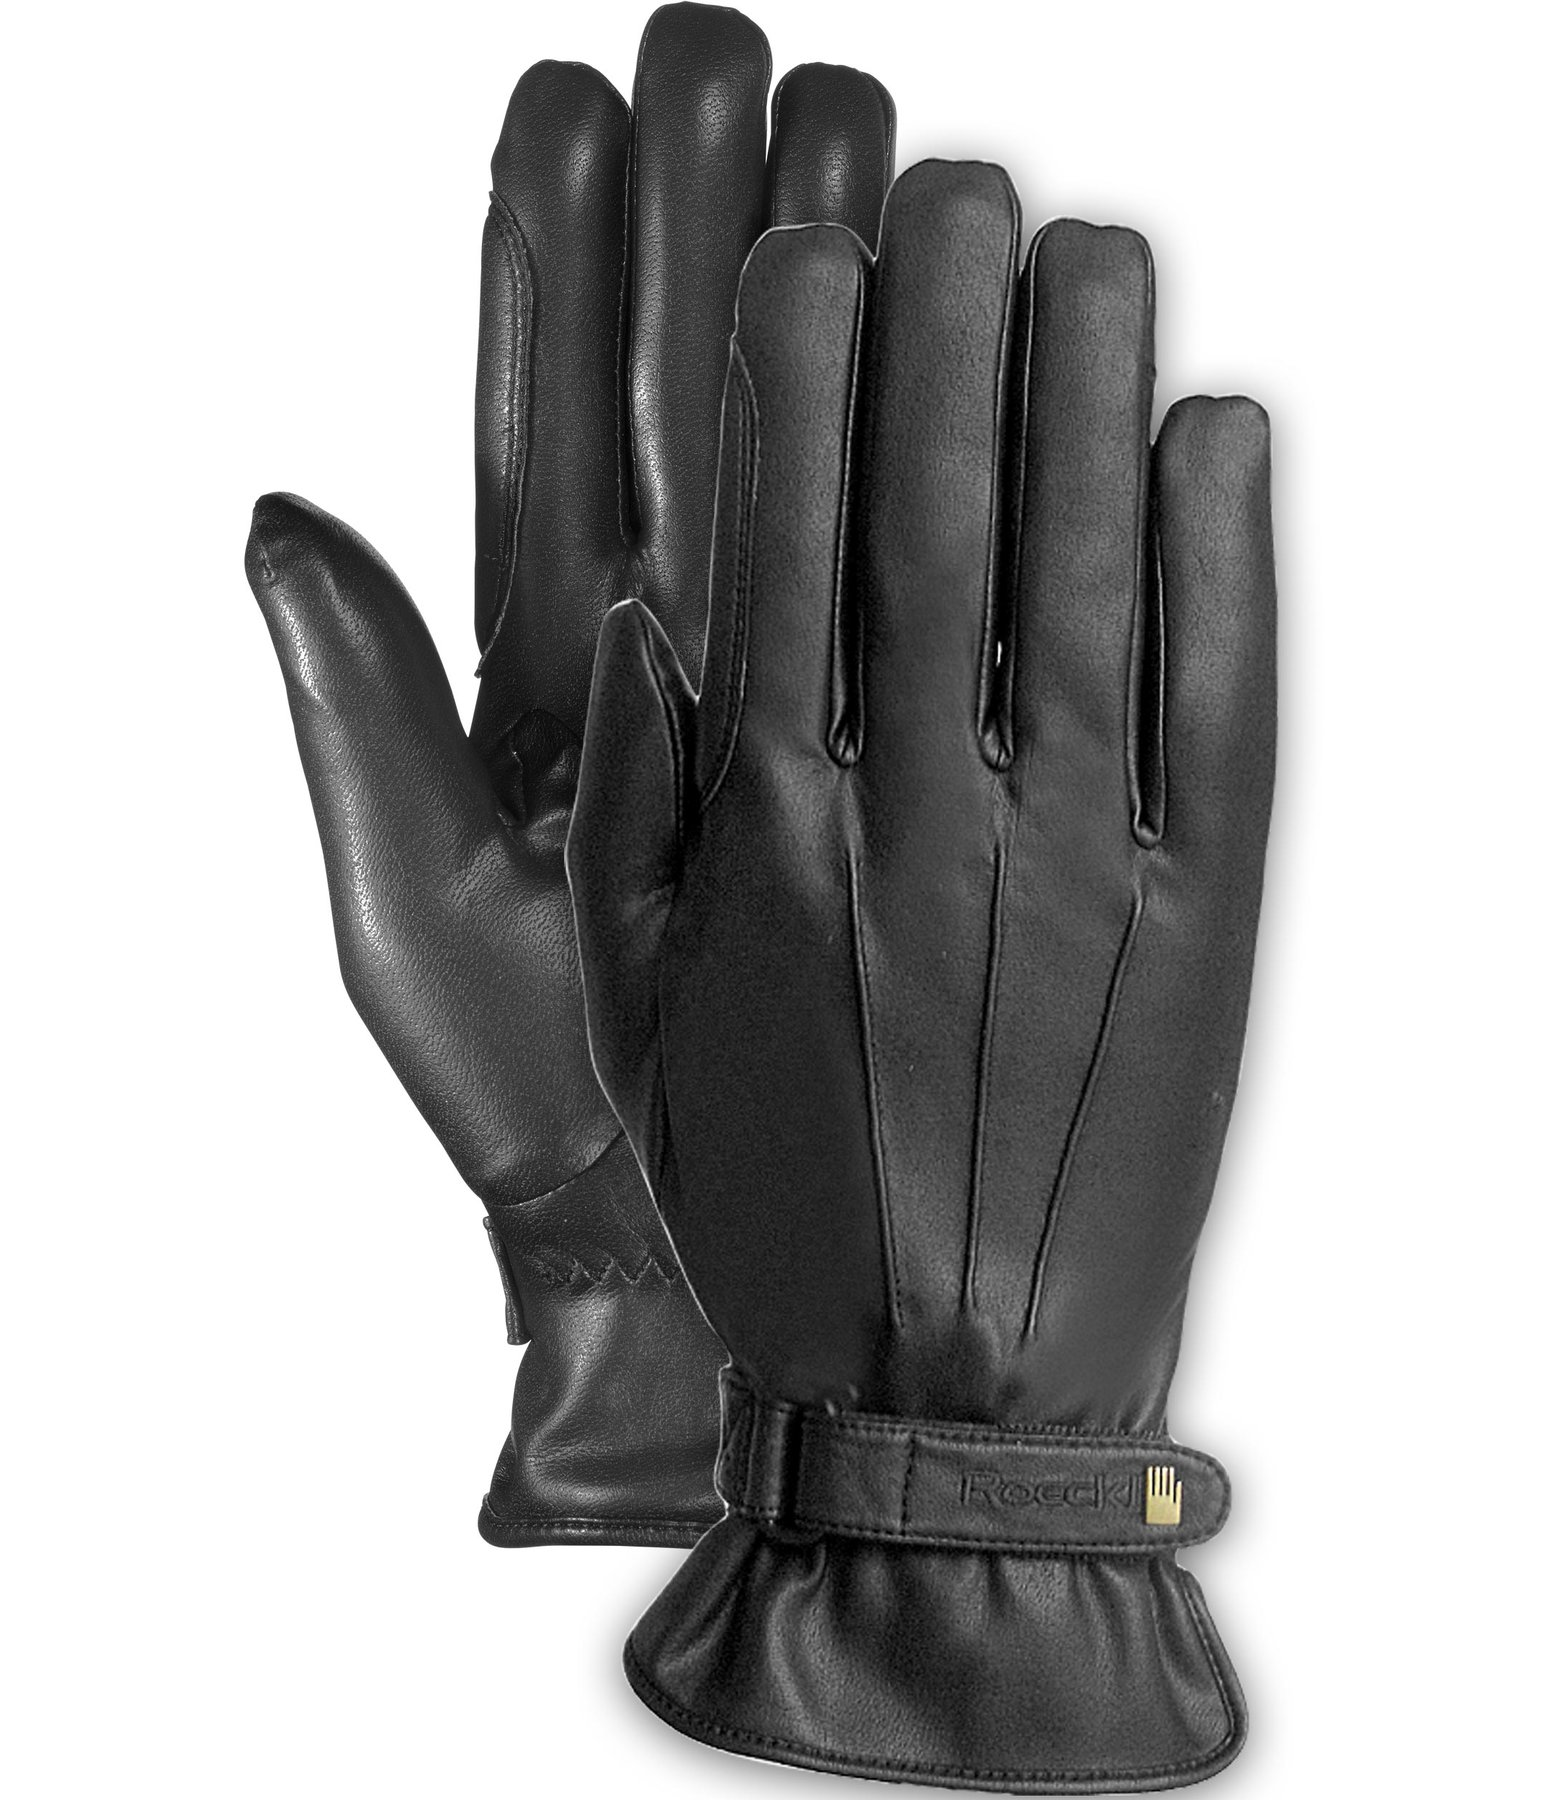 Winter Riding Gloves Wago